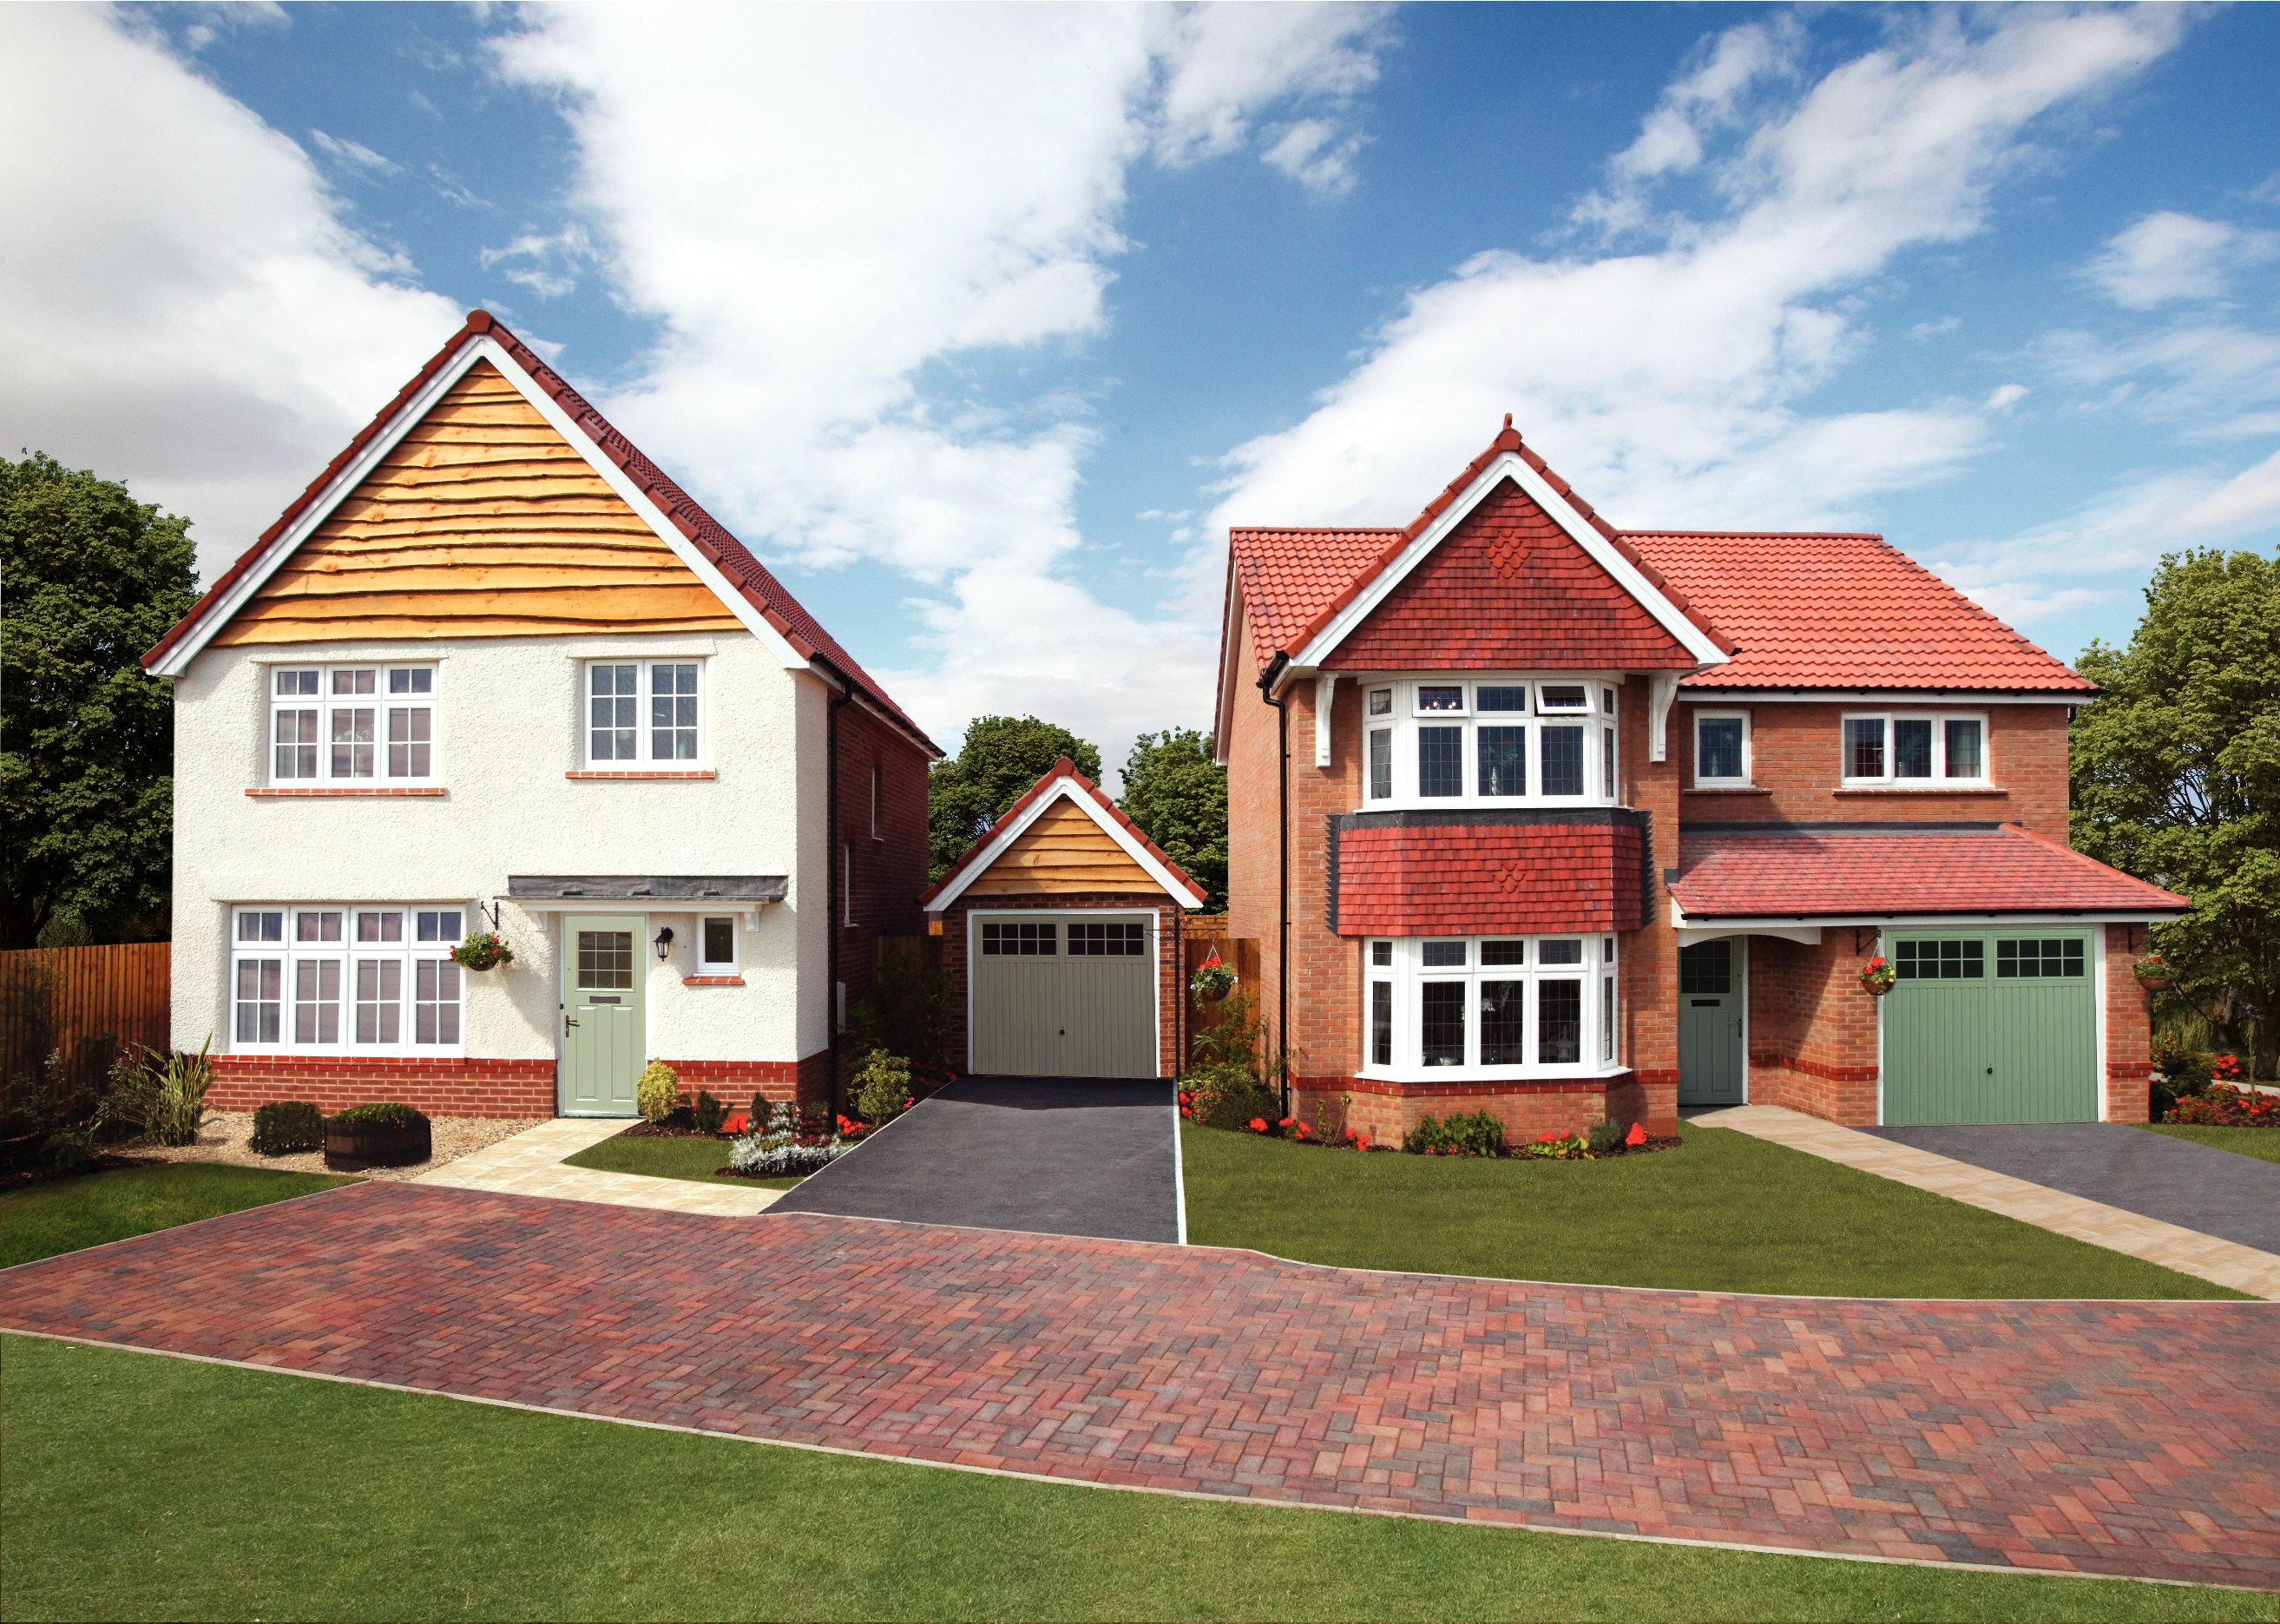 Rowhouse Properties At The Harringtons Are Selling Fast The